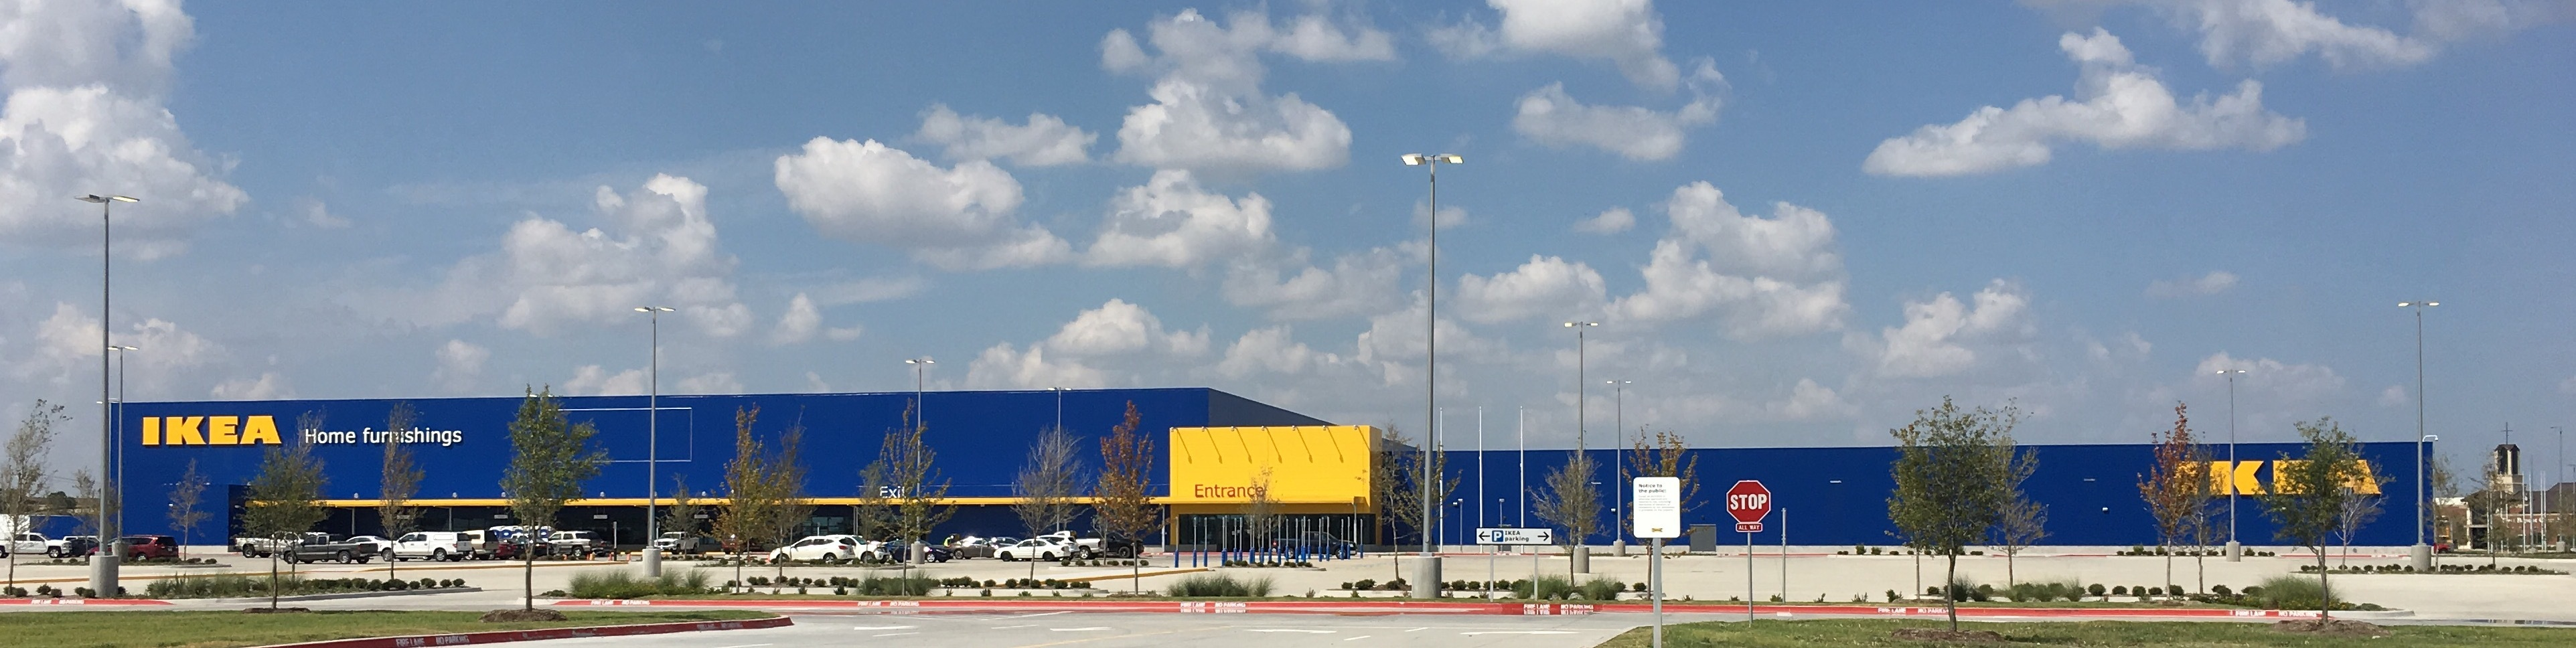 ikea grand prairie to open on december 13 2017 business wire. Black Bedroom Furniture Sets. Home Design Ideas